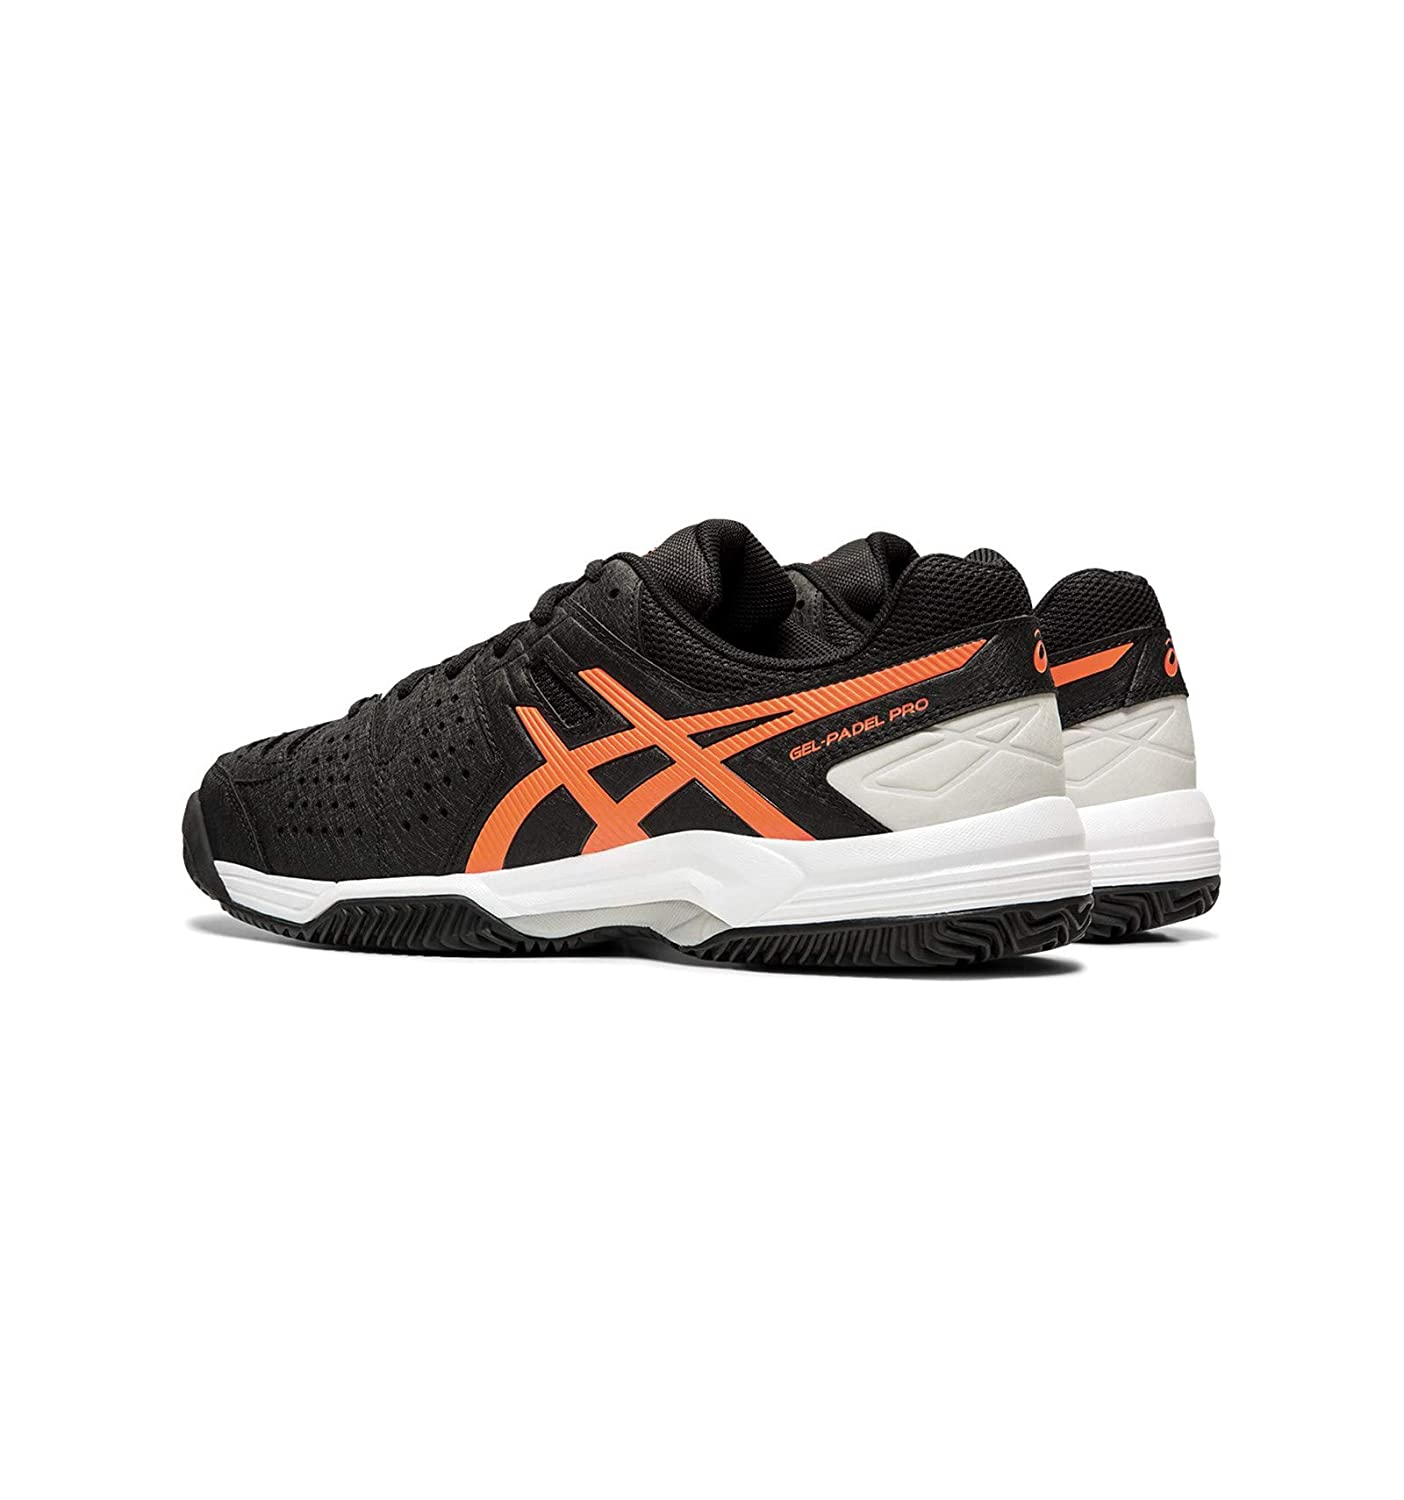 ASICS Chaussures Gel-Padel Pro 3 SG: Amazon.es: Deportes y ...